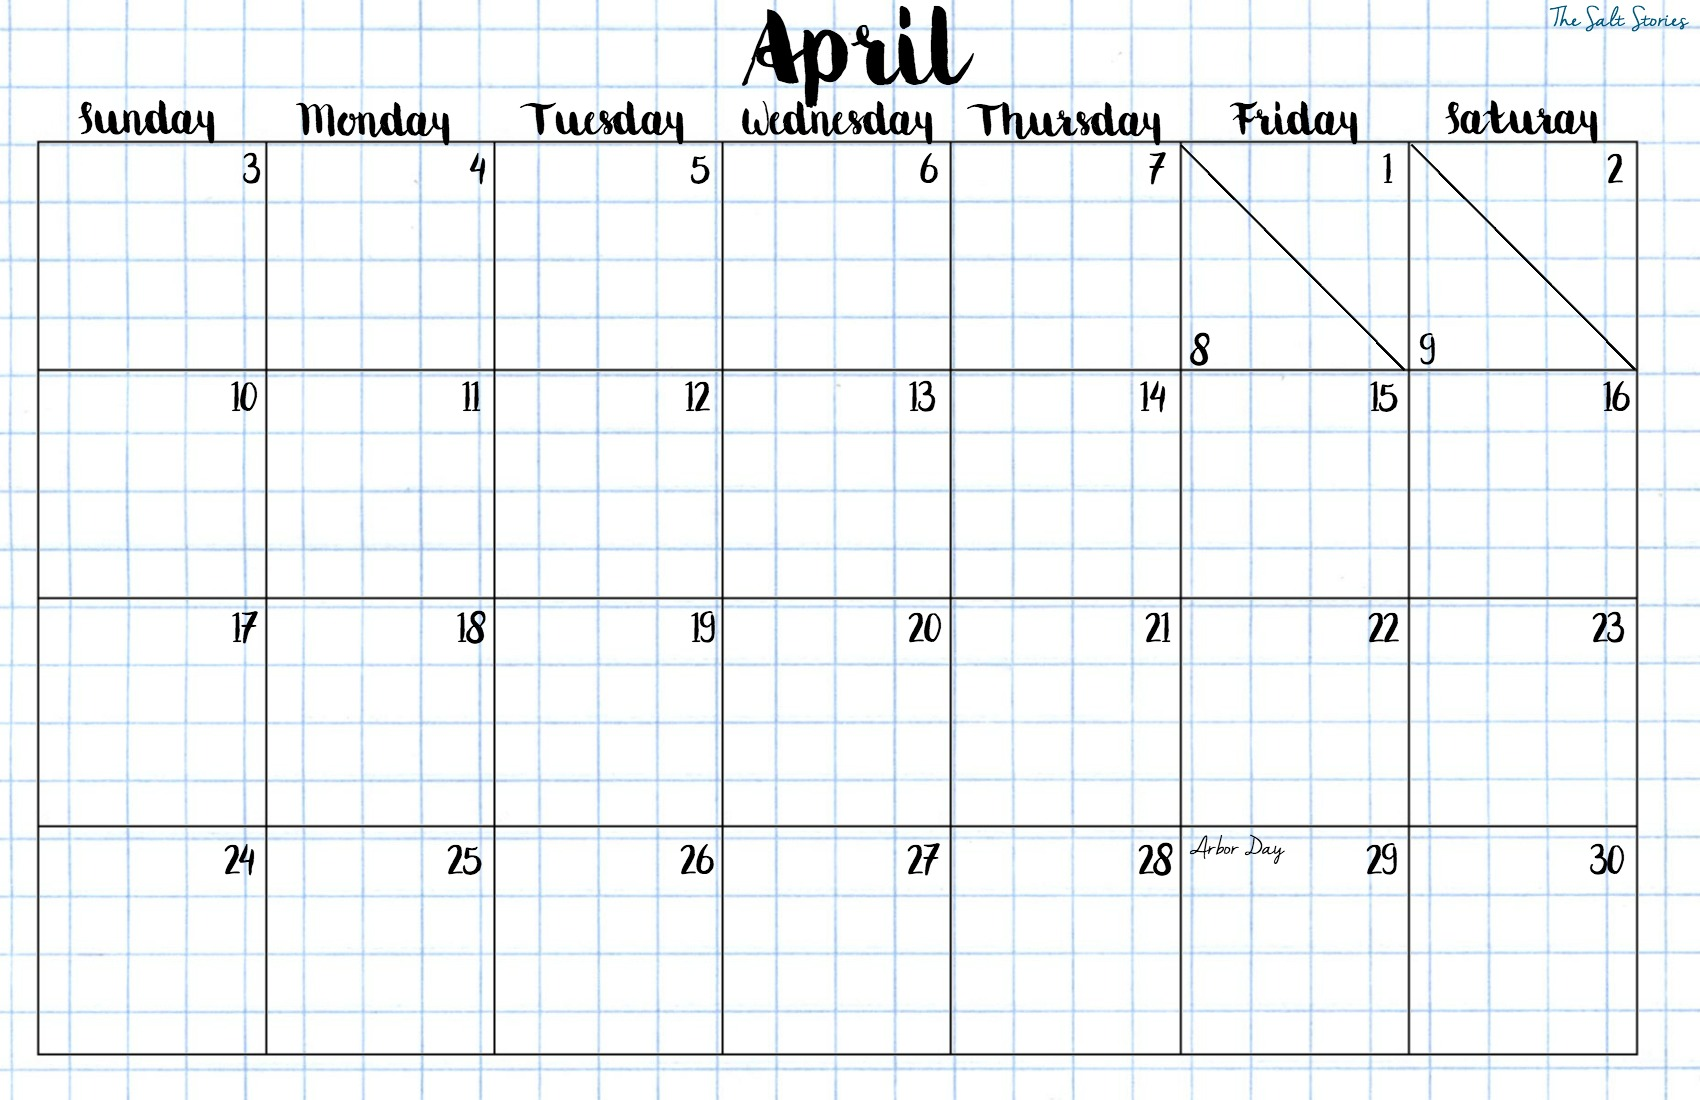 april-calendar-no-saint